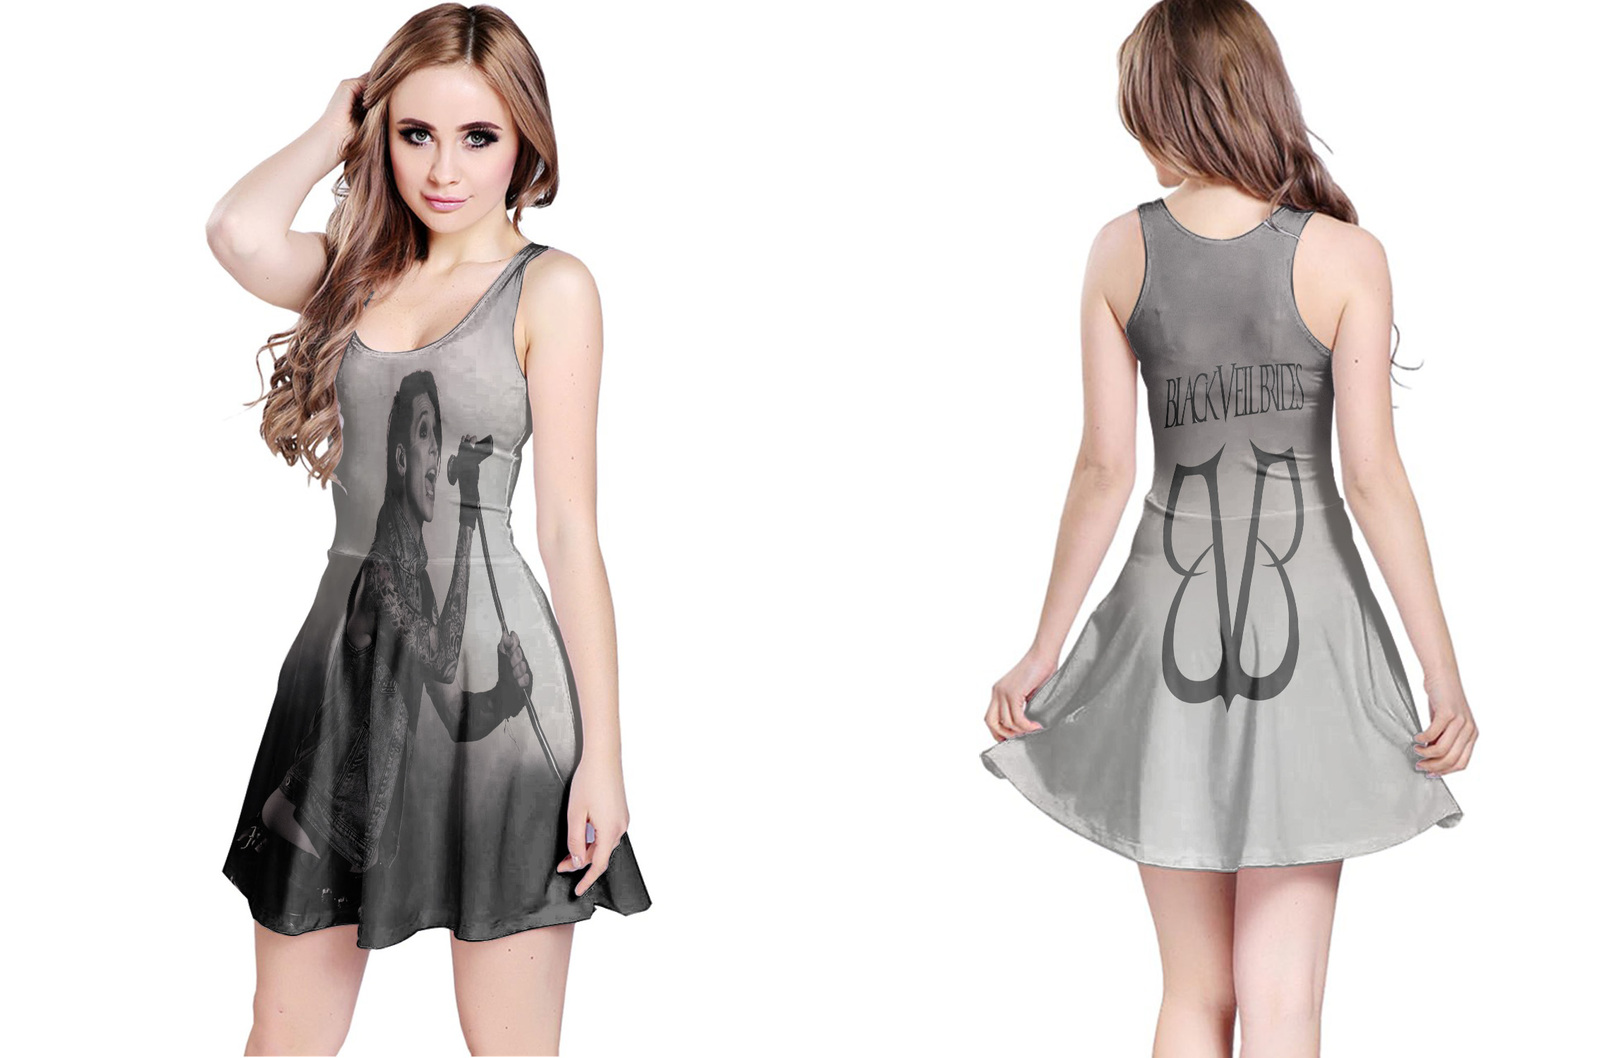 Primary image for Black Veil Brides Collection #1 Women's Reversible Dress